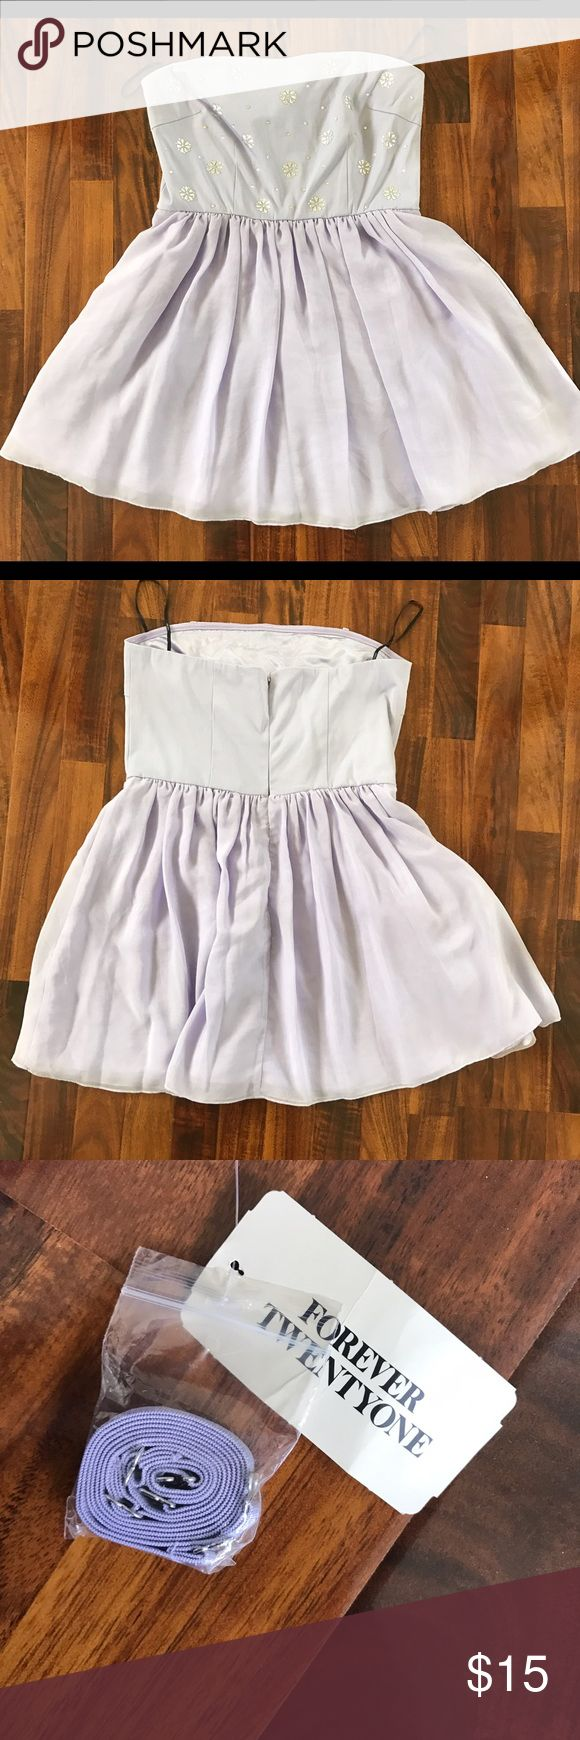 Forever 21 light purple dress This dress can be worn with and without straps. It is in new condition with tags. It is the perfect dress to wear to a party or a date. Forever 21 Dresses Mini